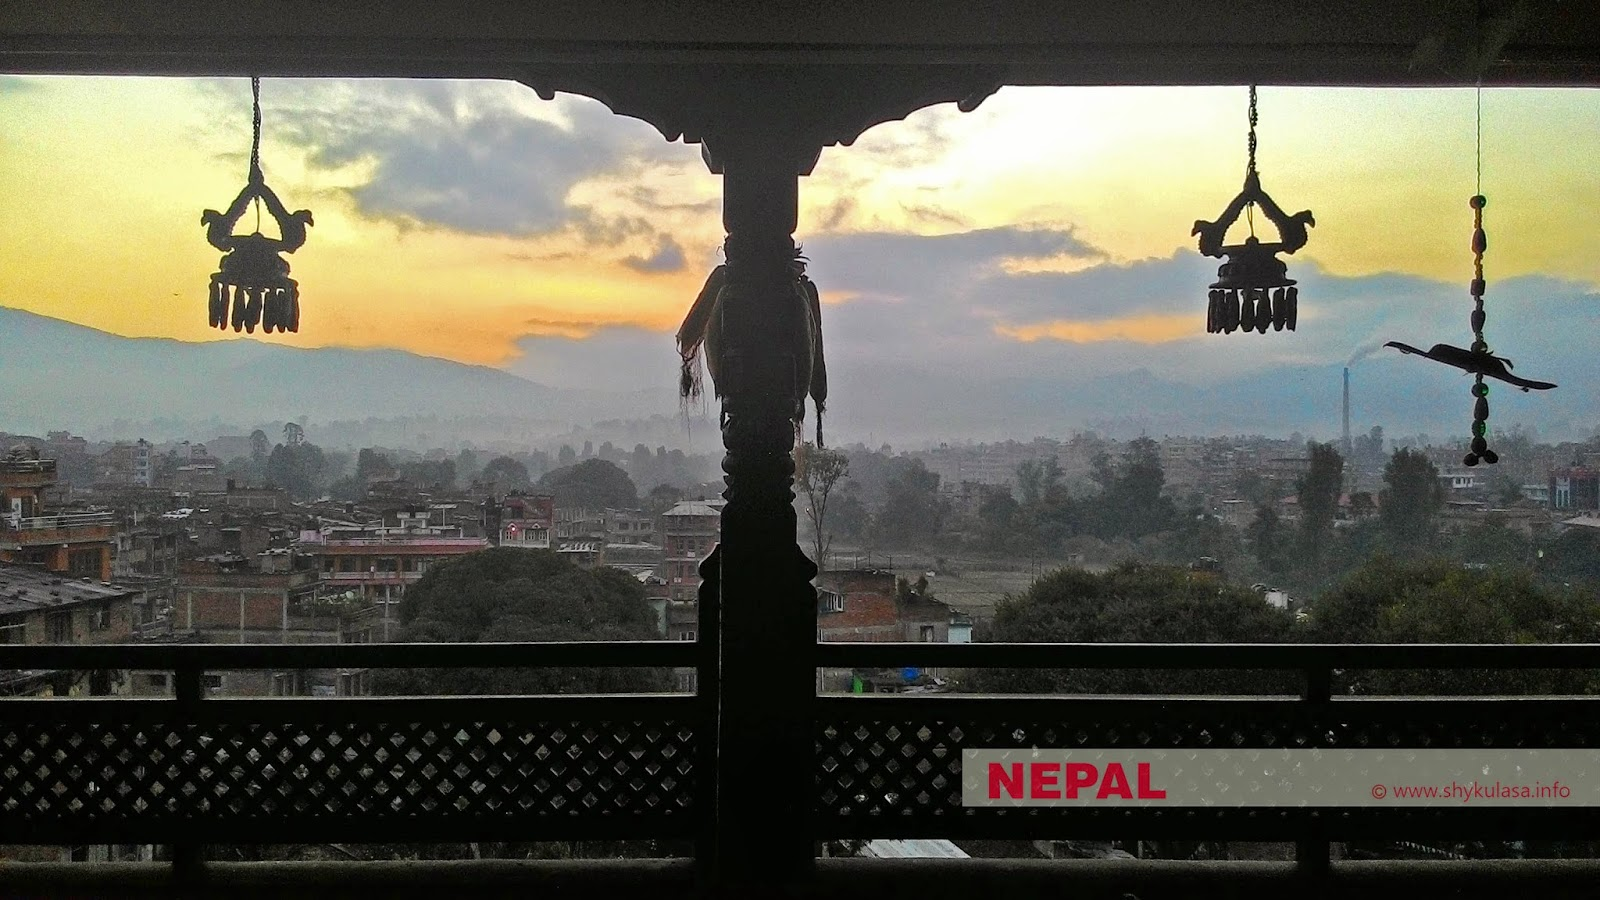 A new day in Bhaktapur, Nepal